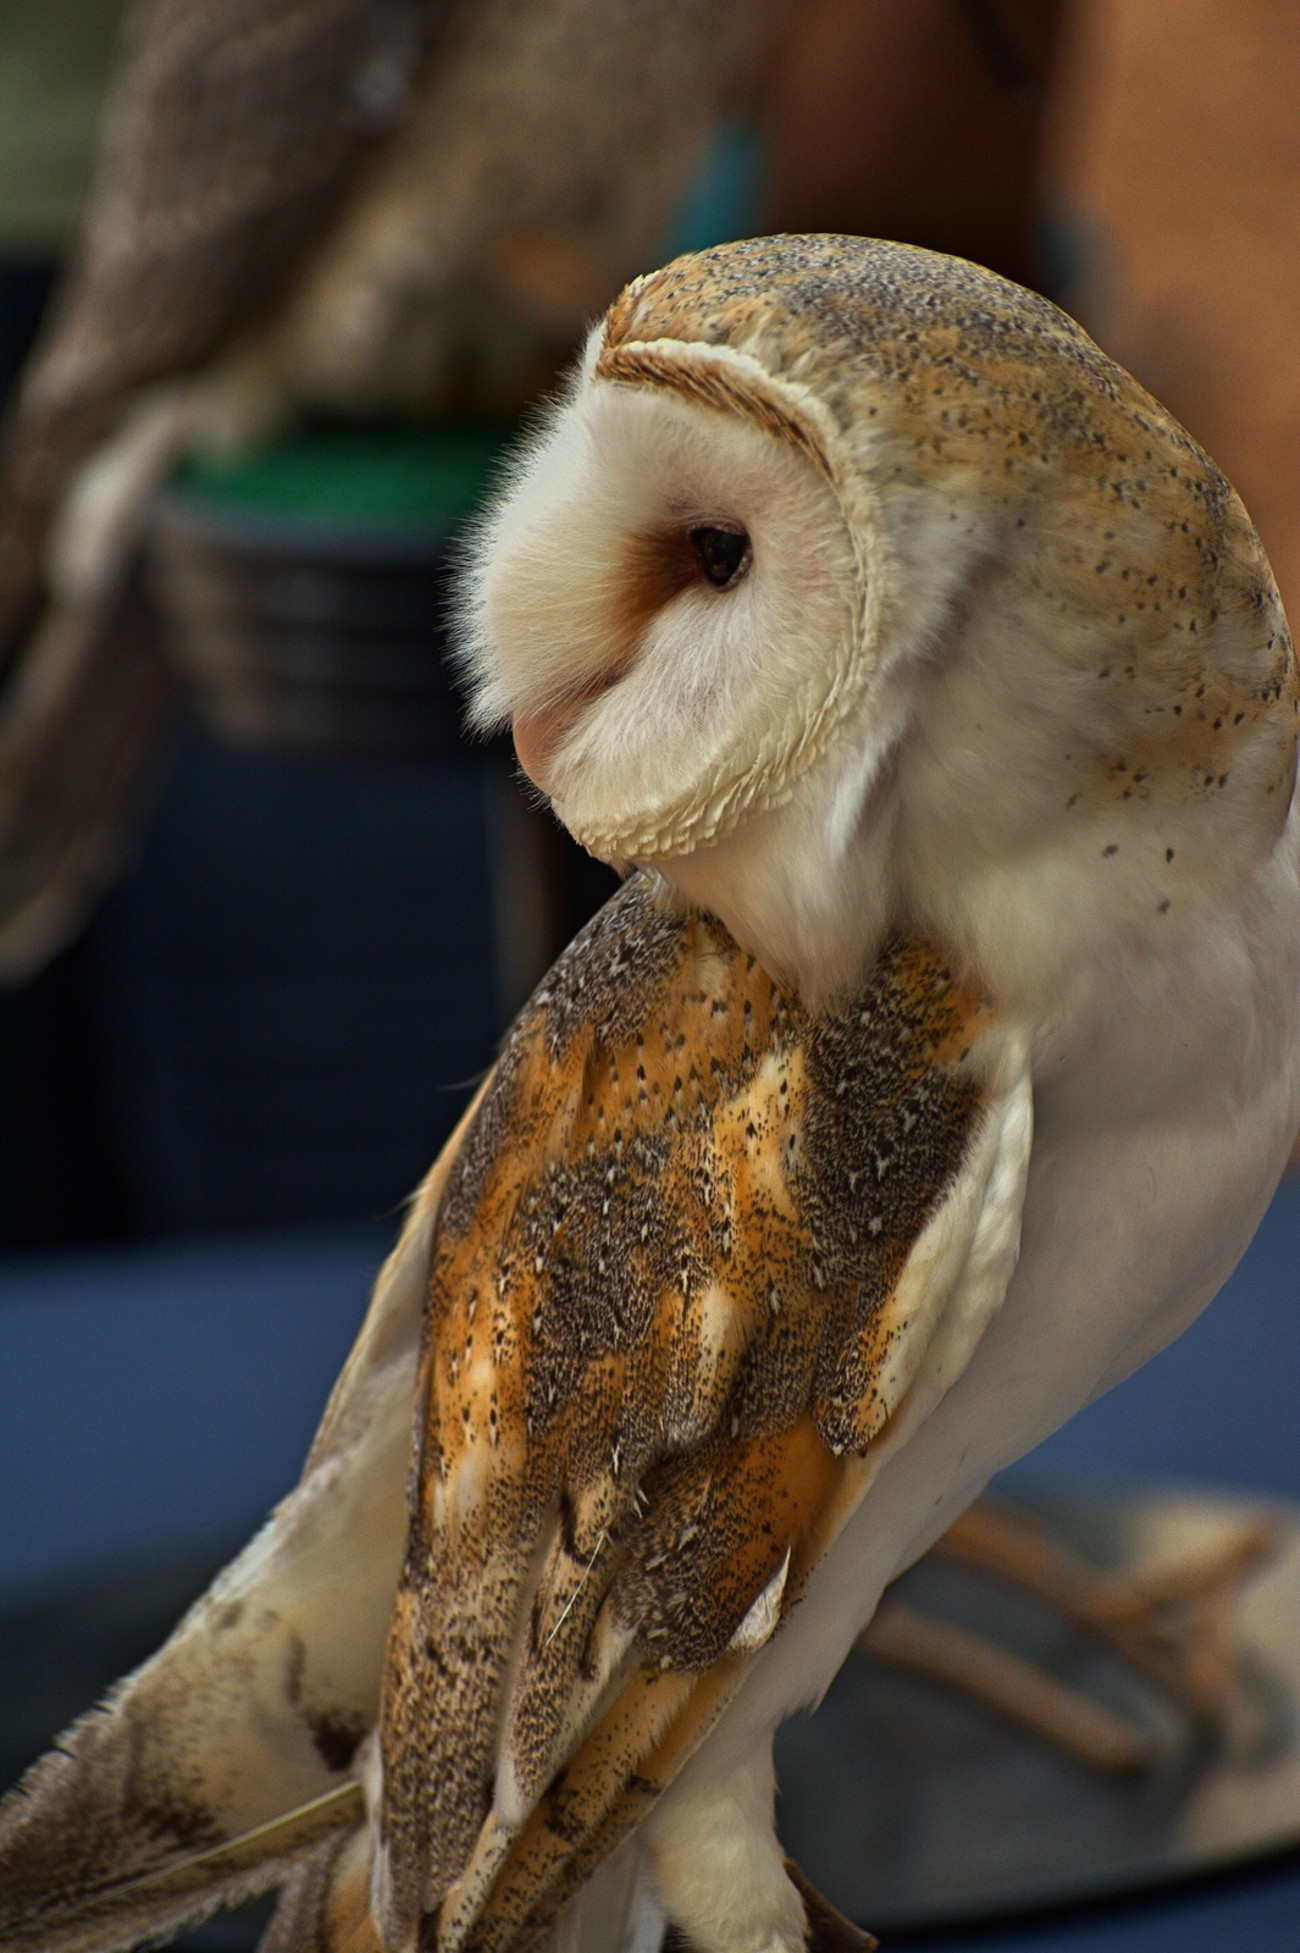 Magnificent Barn Owl